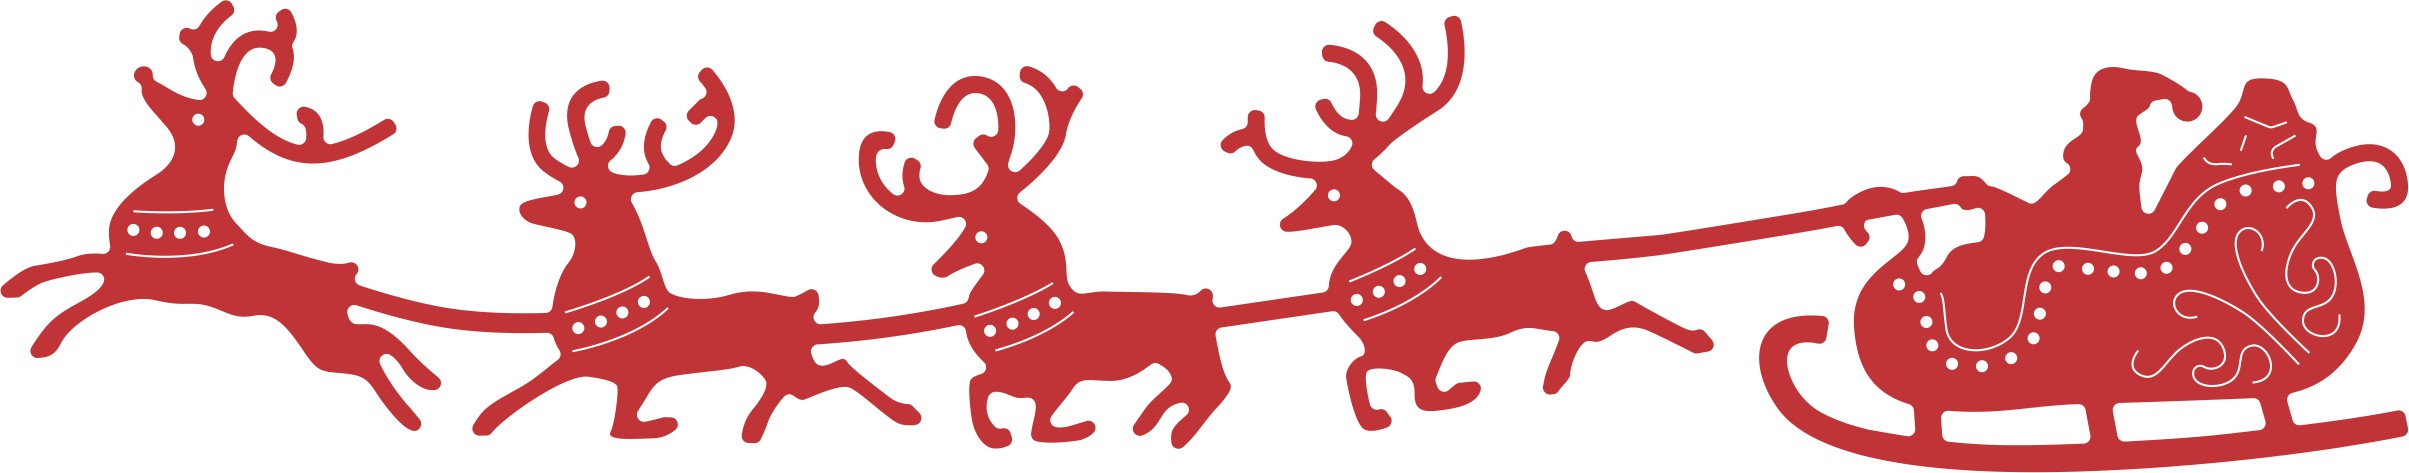 Christmas clipart santa sleigh library Free Sleigh Silhouette Cliparts, Download Free Clip Art ... library